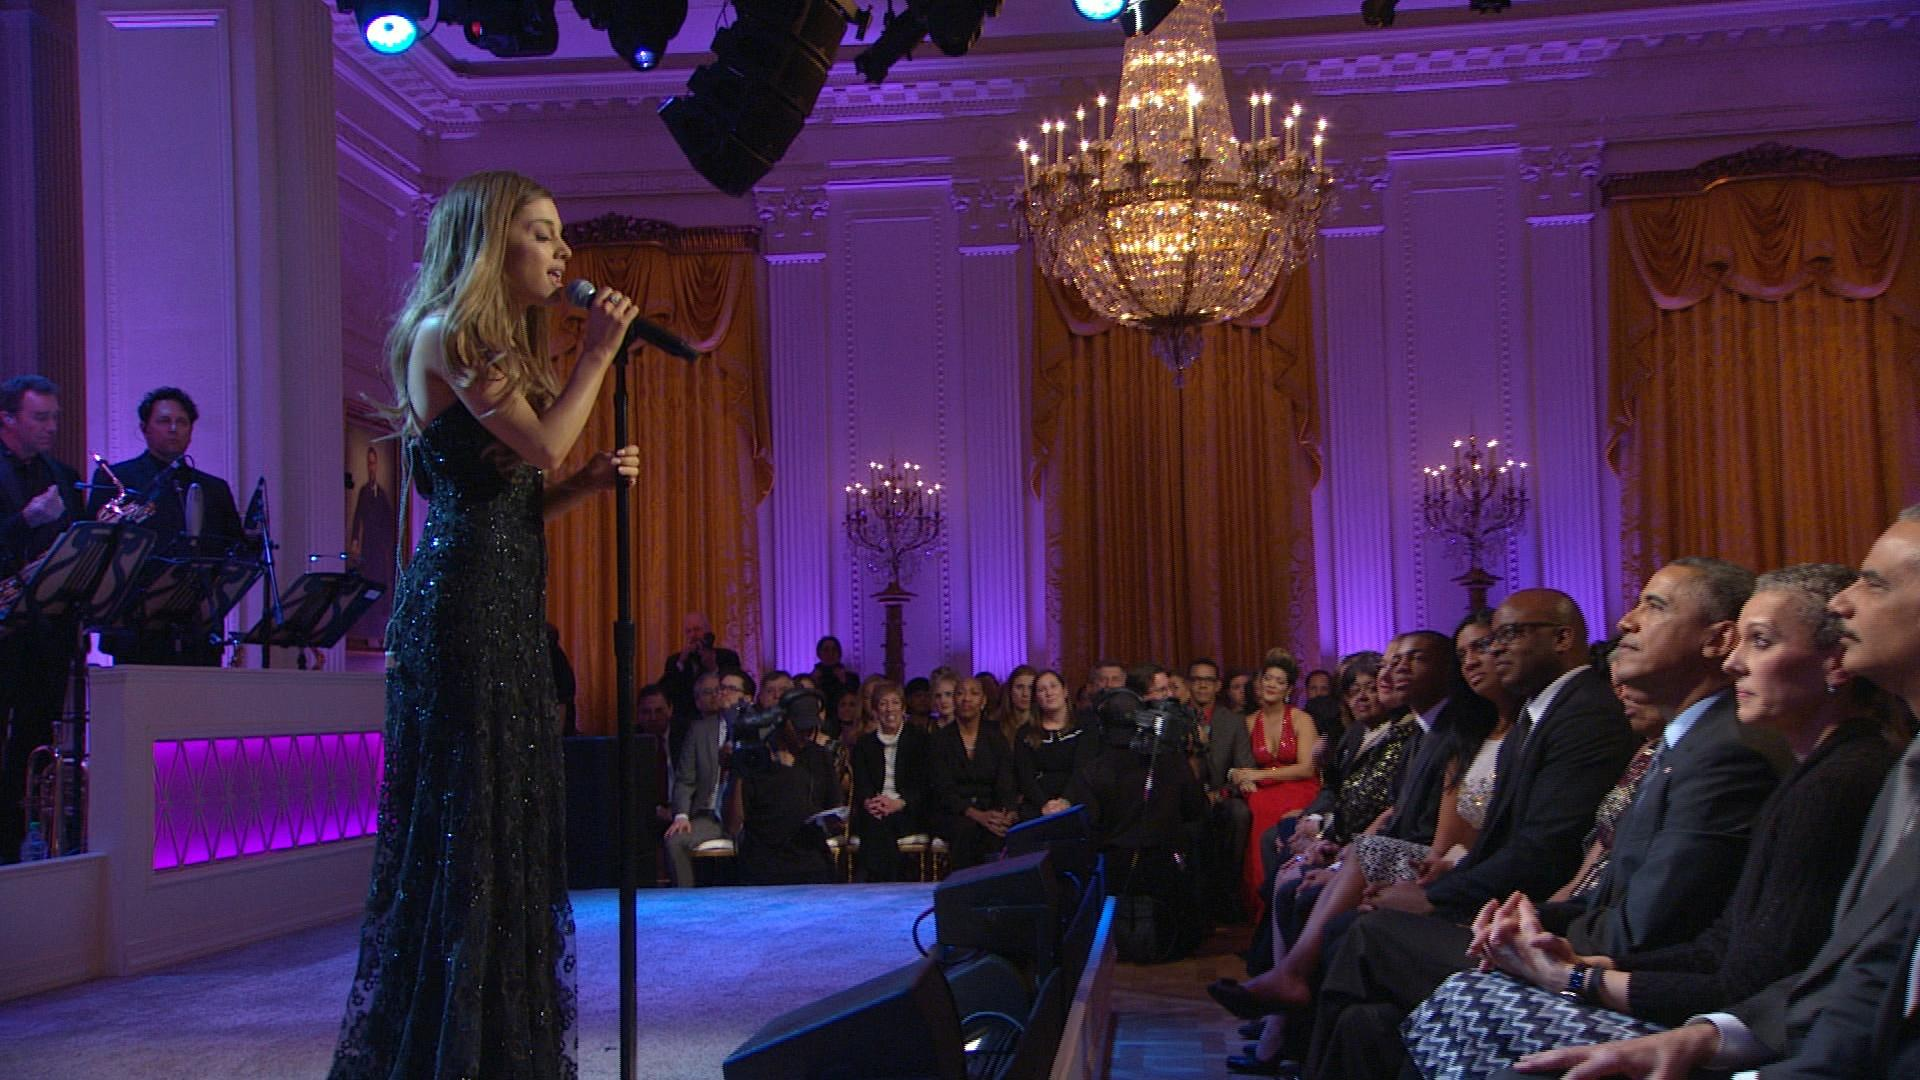 Ariana grande performs tattooed heart in performance for How much rooms does the white house have